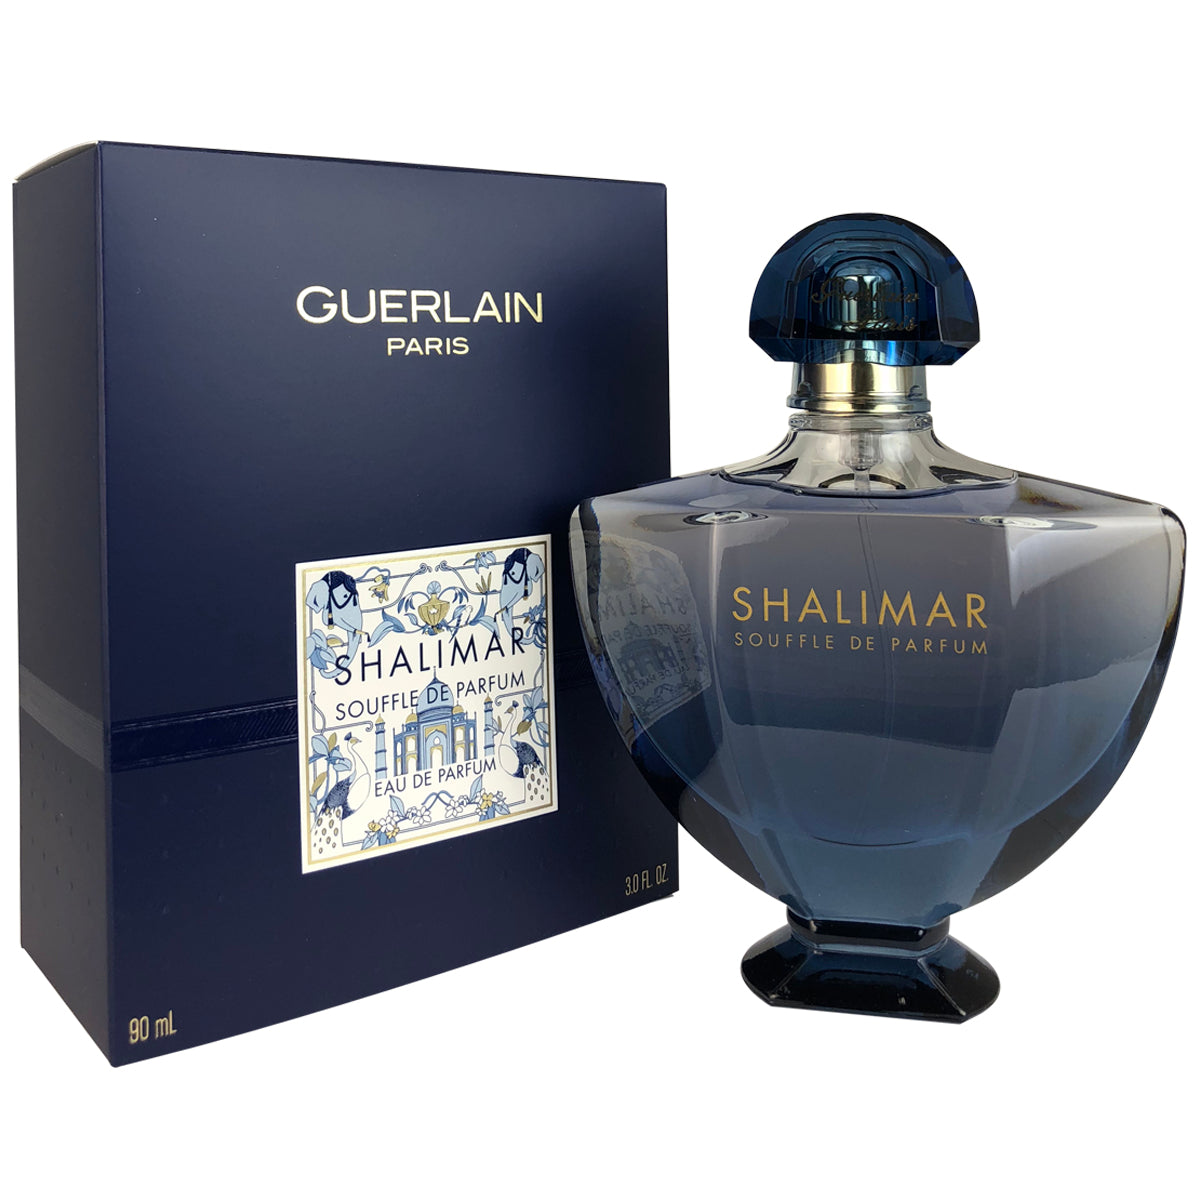 Shalimar Souffle De Parfum For Women by Guerlain 3 oz Eau De Parfum Spray